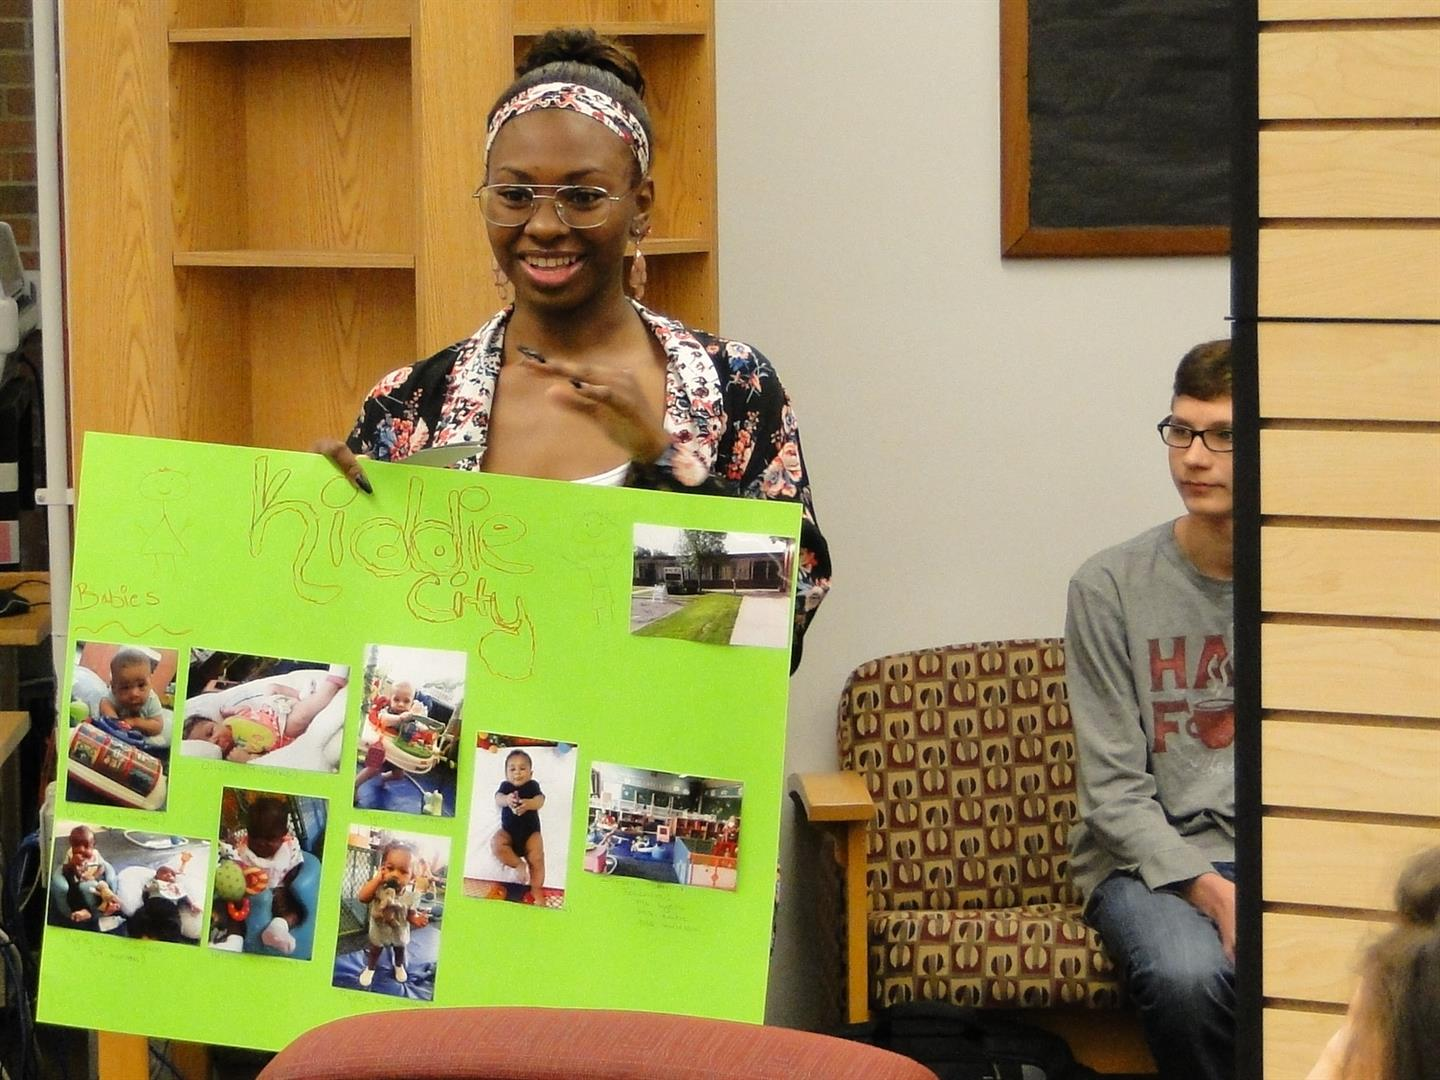 Student with daycare project board